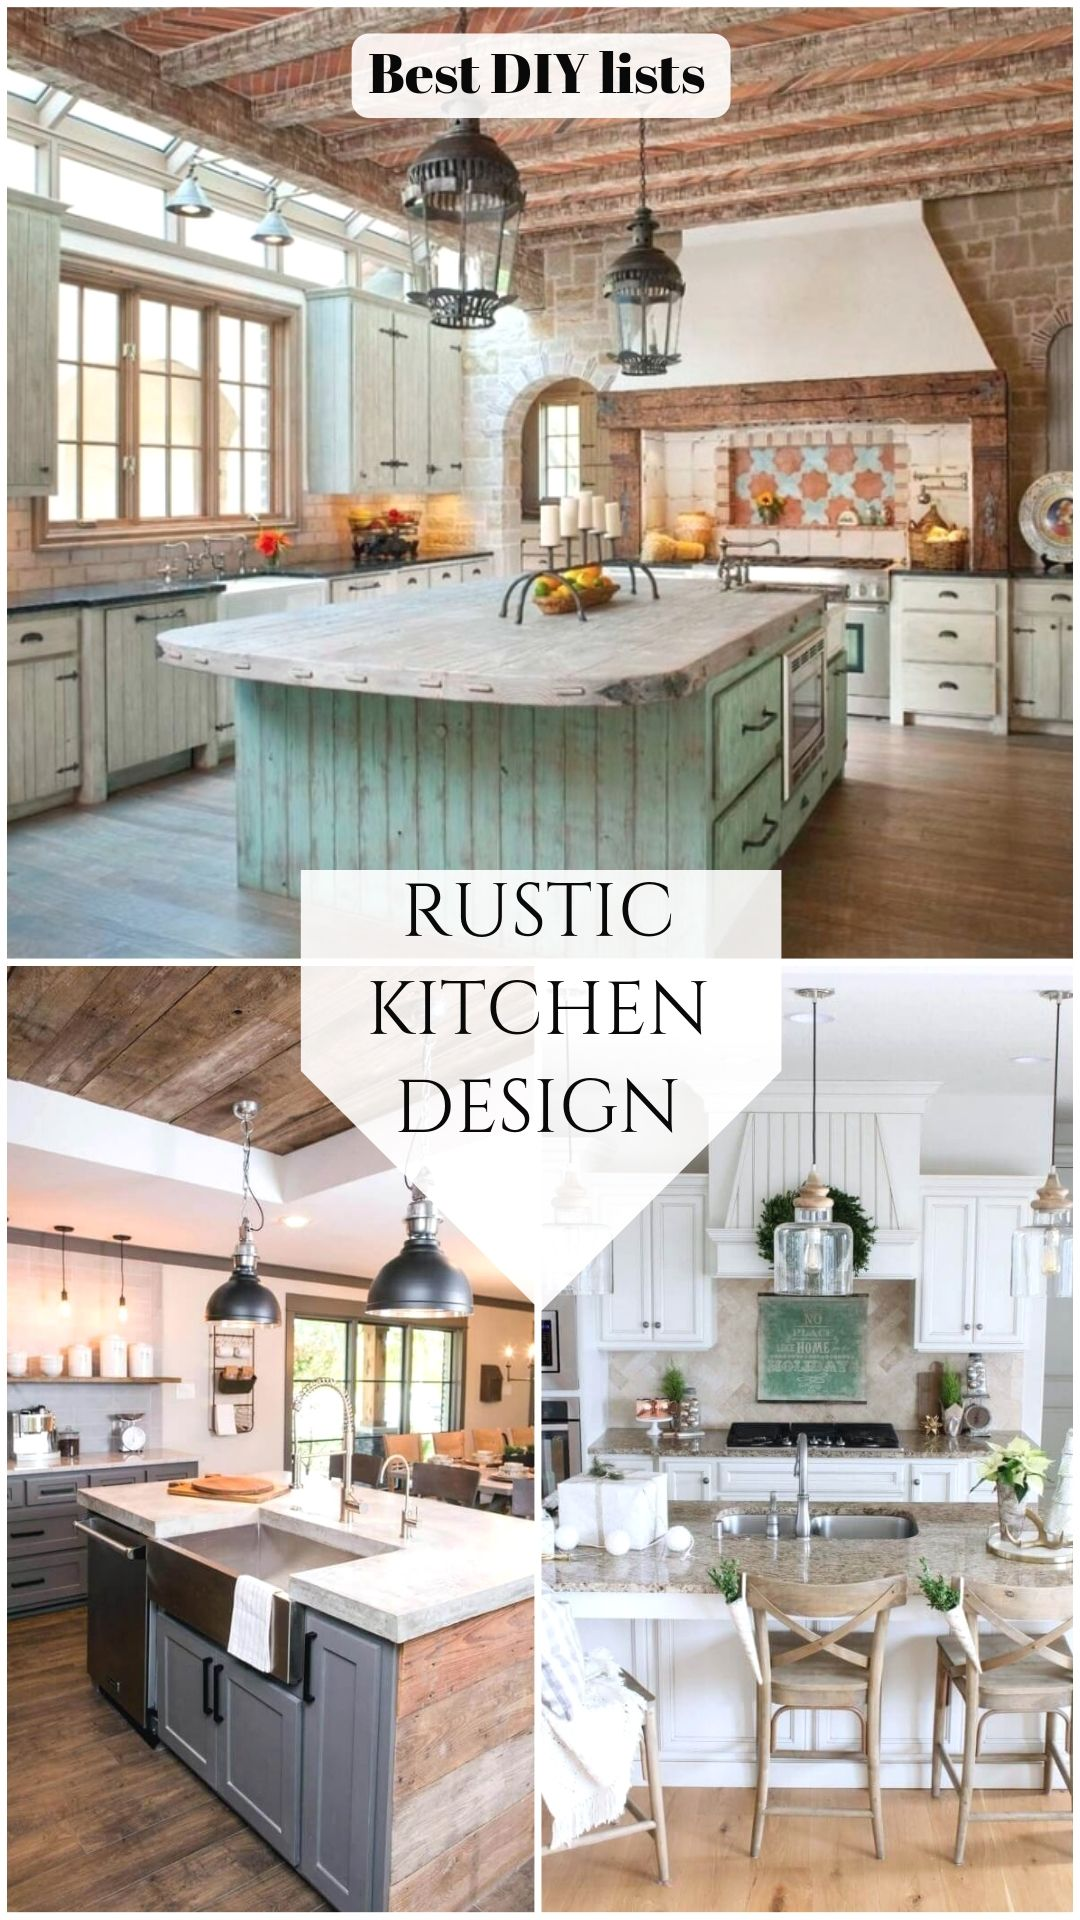 Rustic Kitchen Ideas in 2020   Cheap kitchen remodel, Home ...